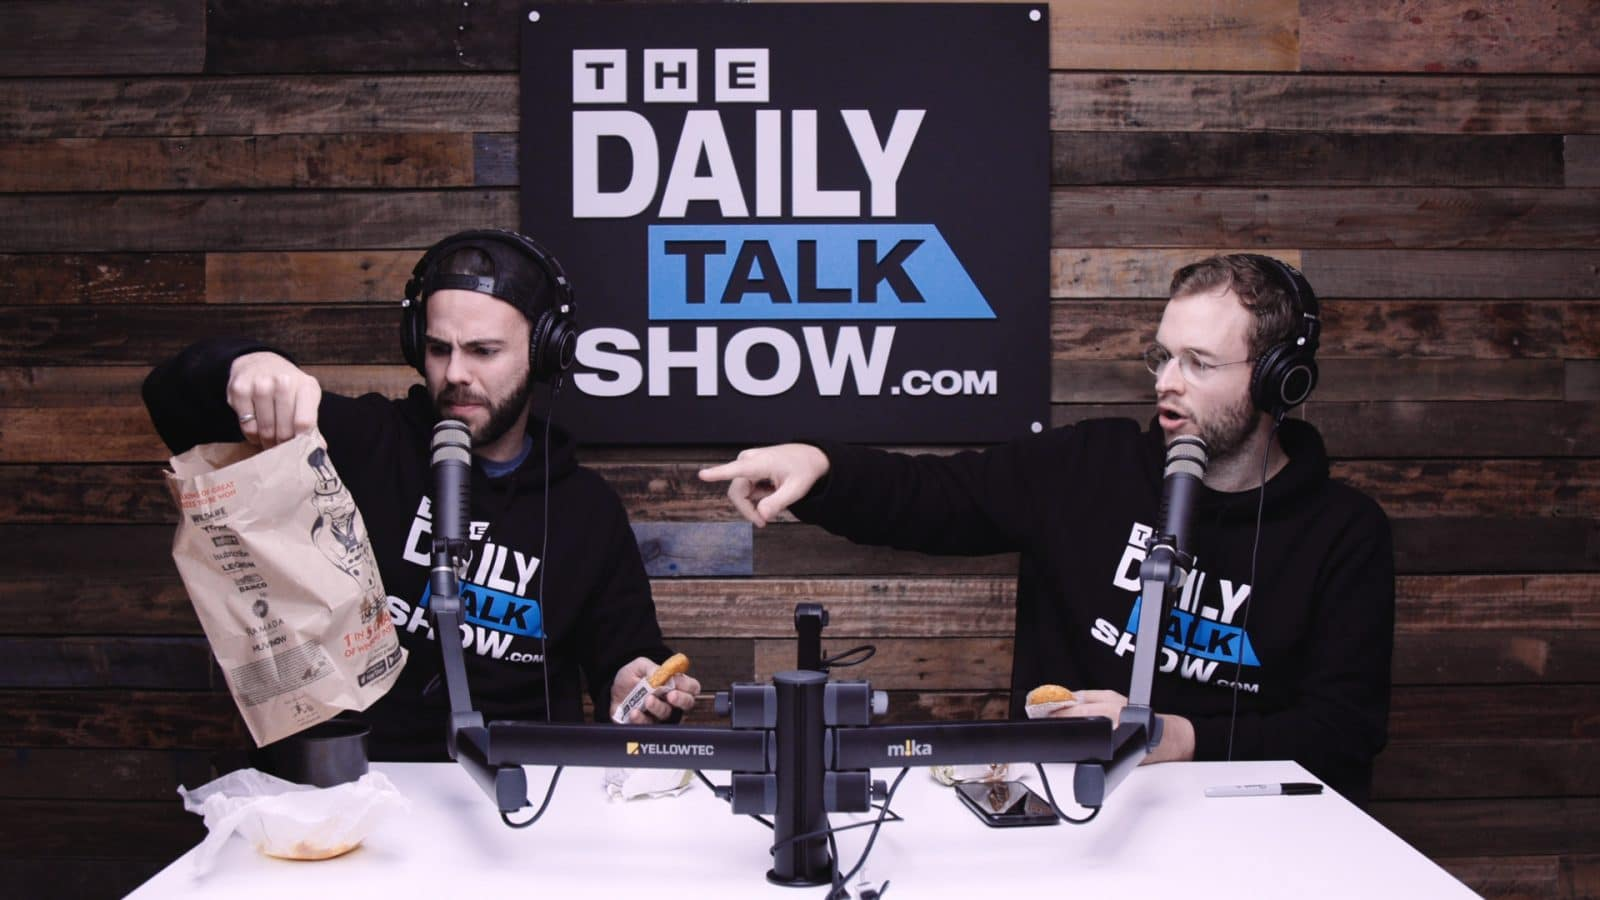 The-Daily-Talk-Show-468